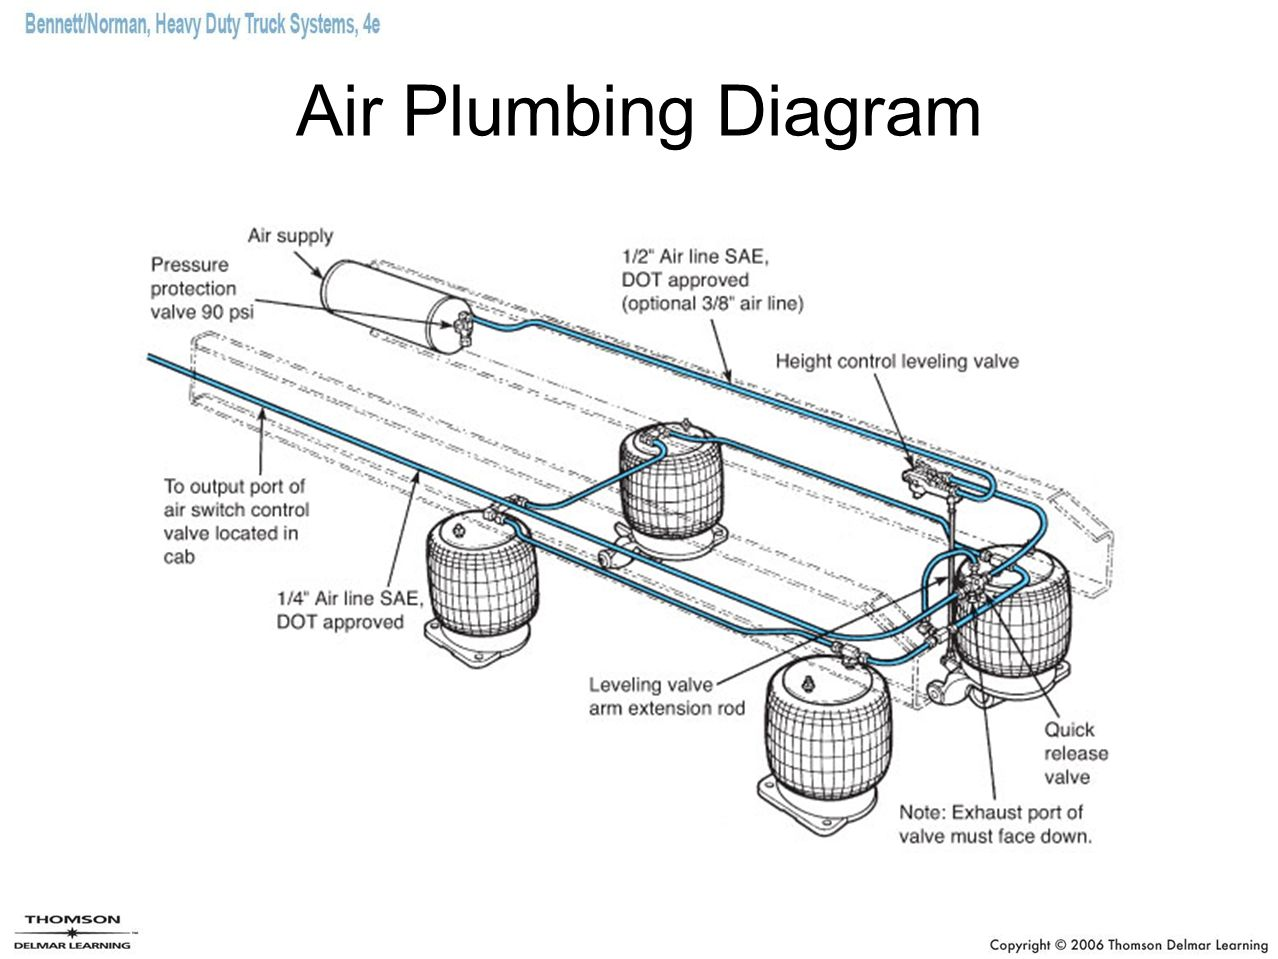 [DIAGRAM] Electronic Air Suspension System Diagram FULL